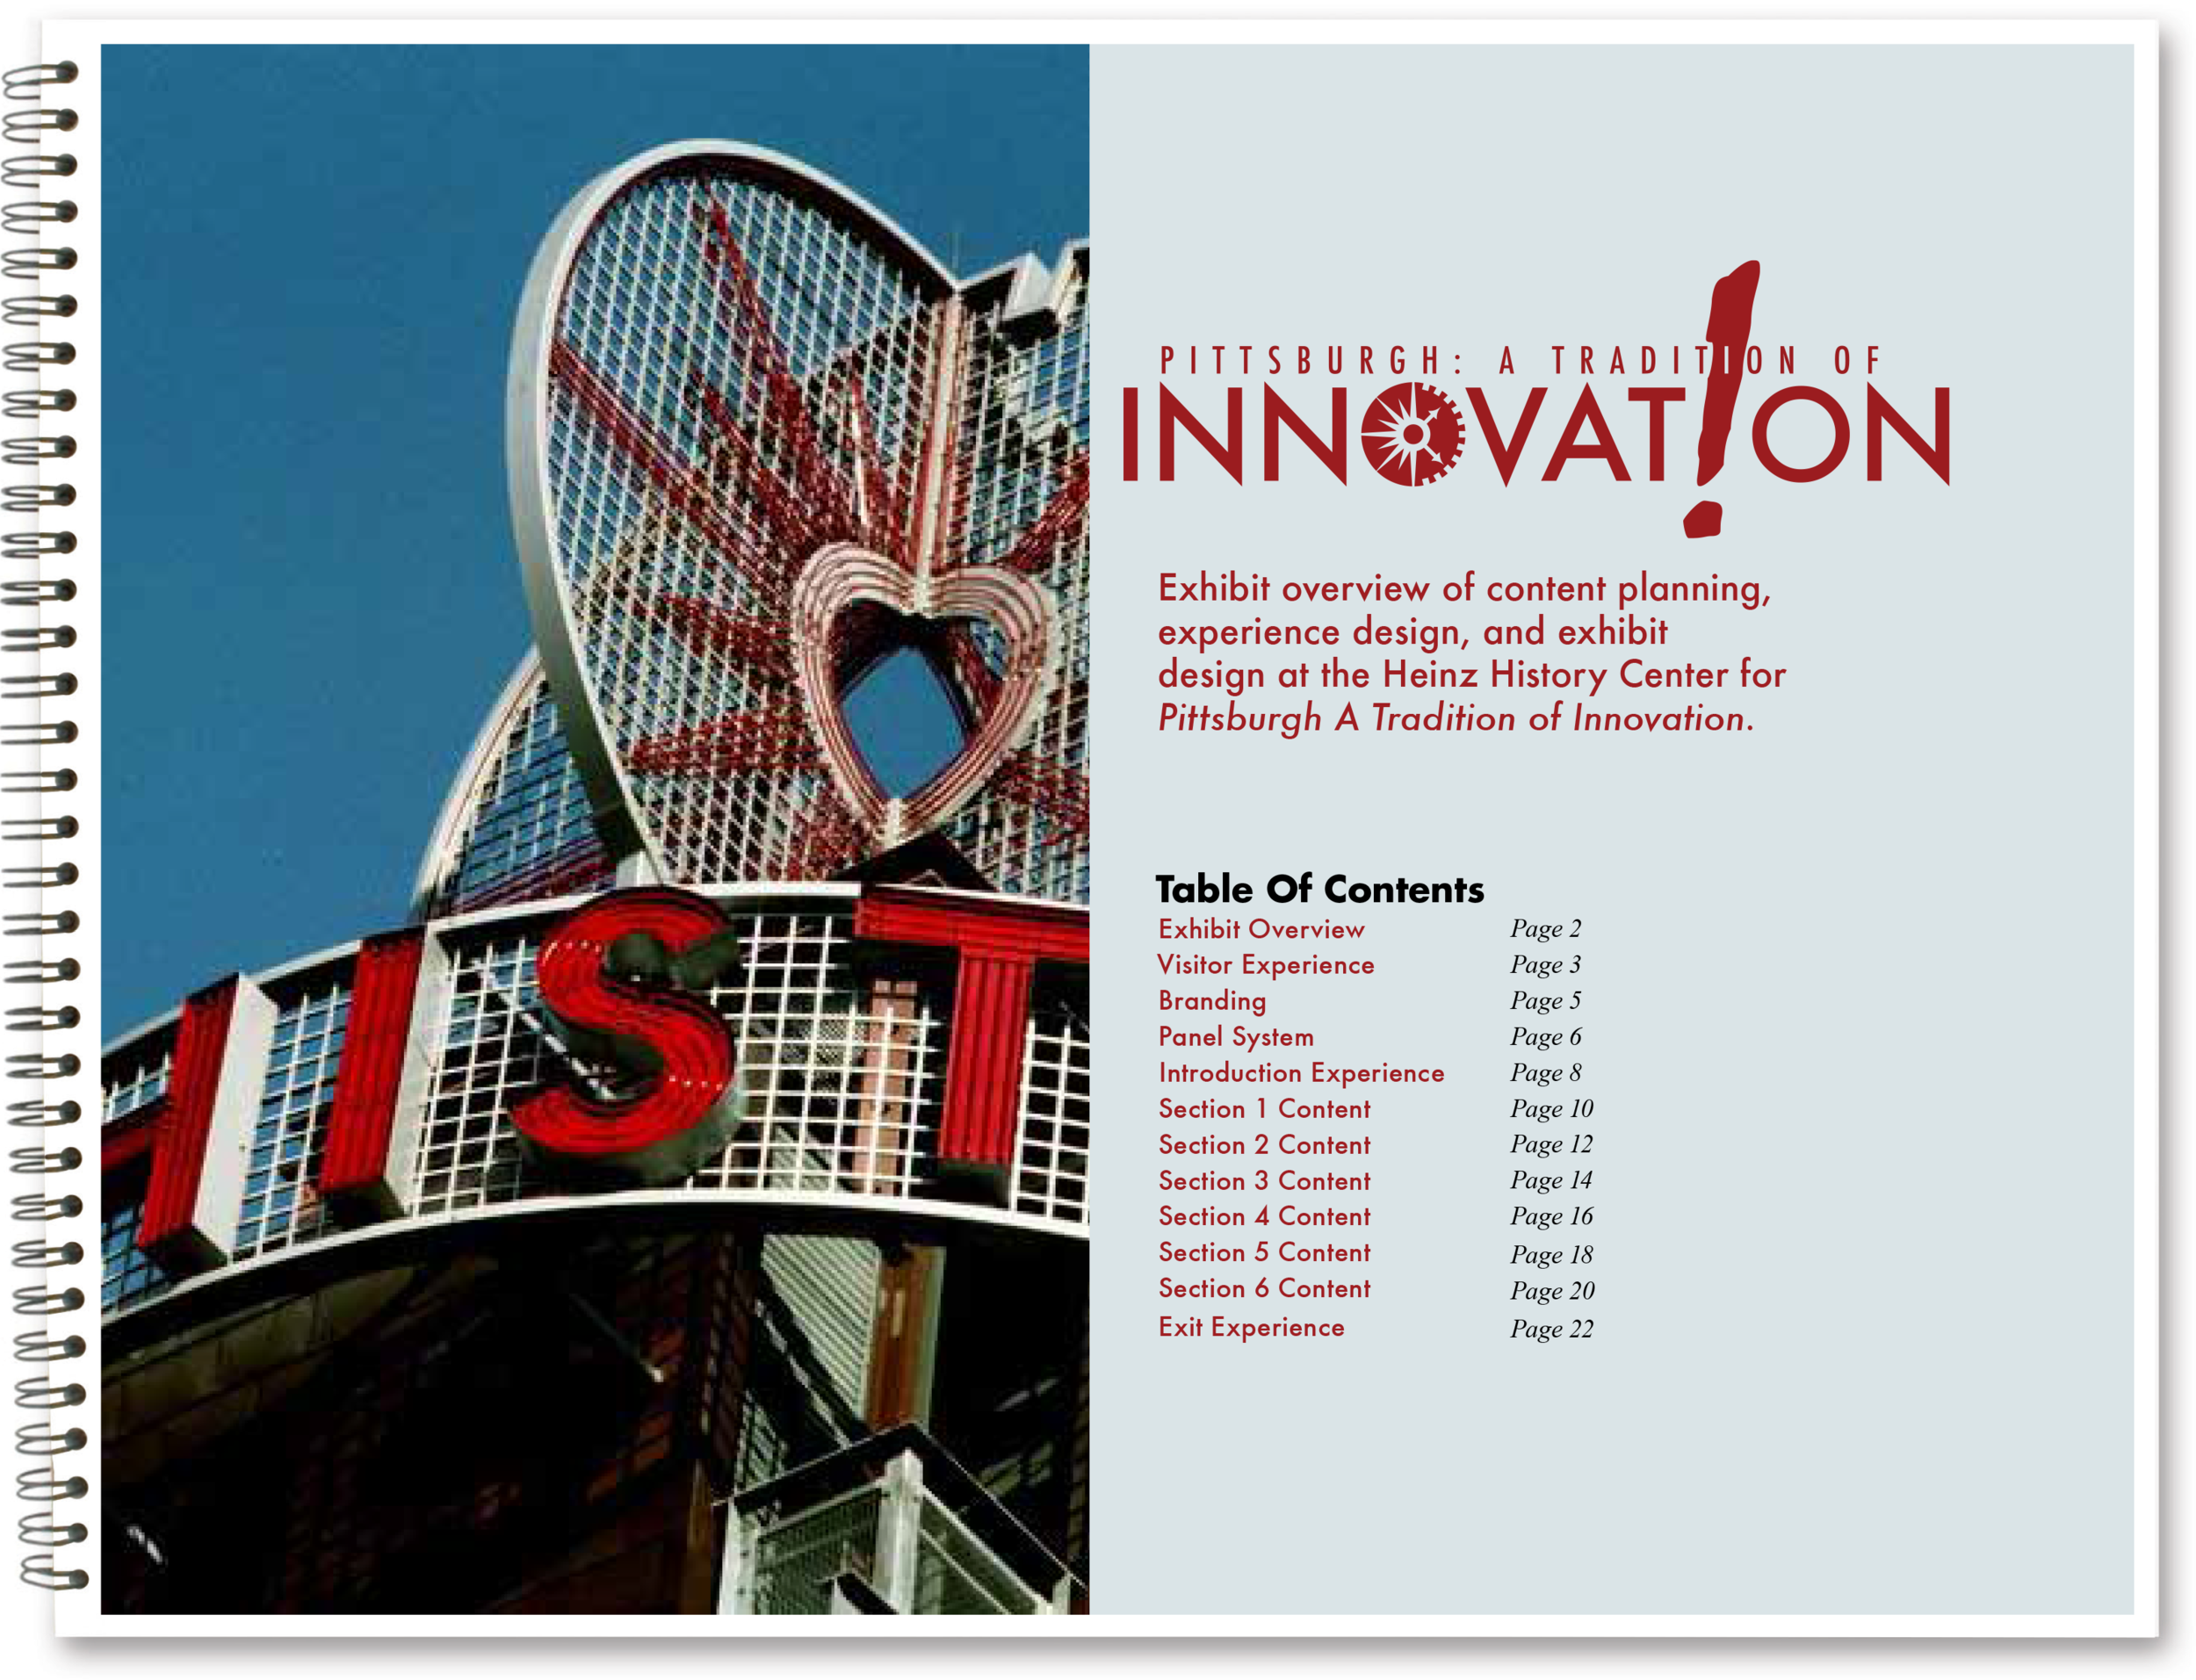 History_of_Innovation_1_sq_spc.png